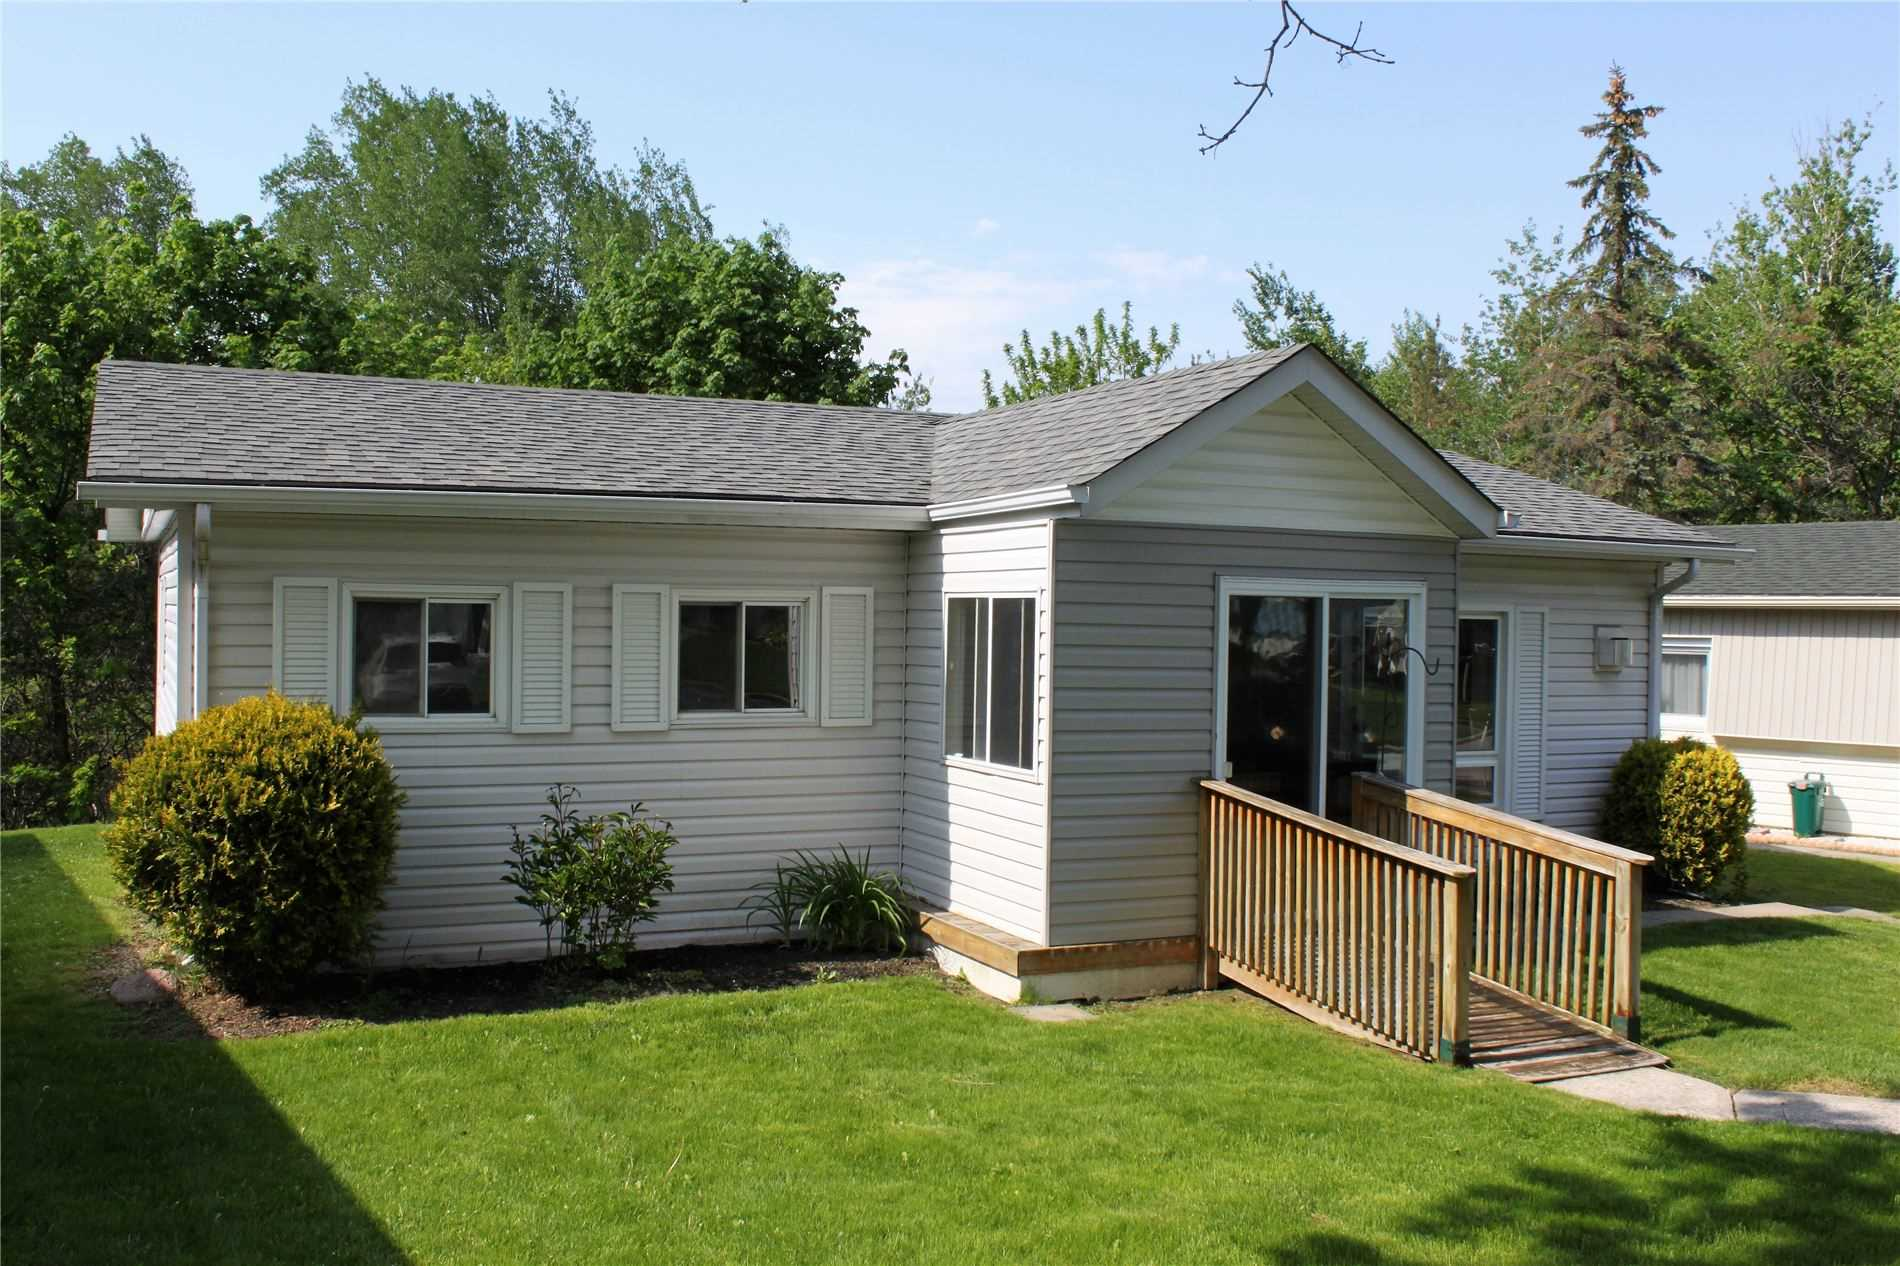 pictures of house for sale MLS: N4722426 located at 52 Flora Dr, Innisfil L9S1R1